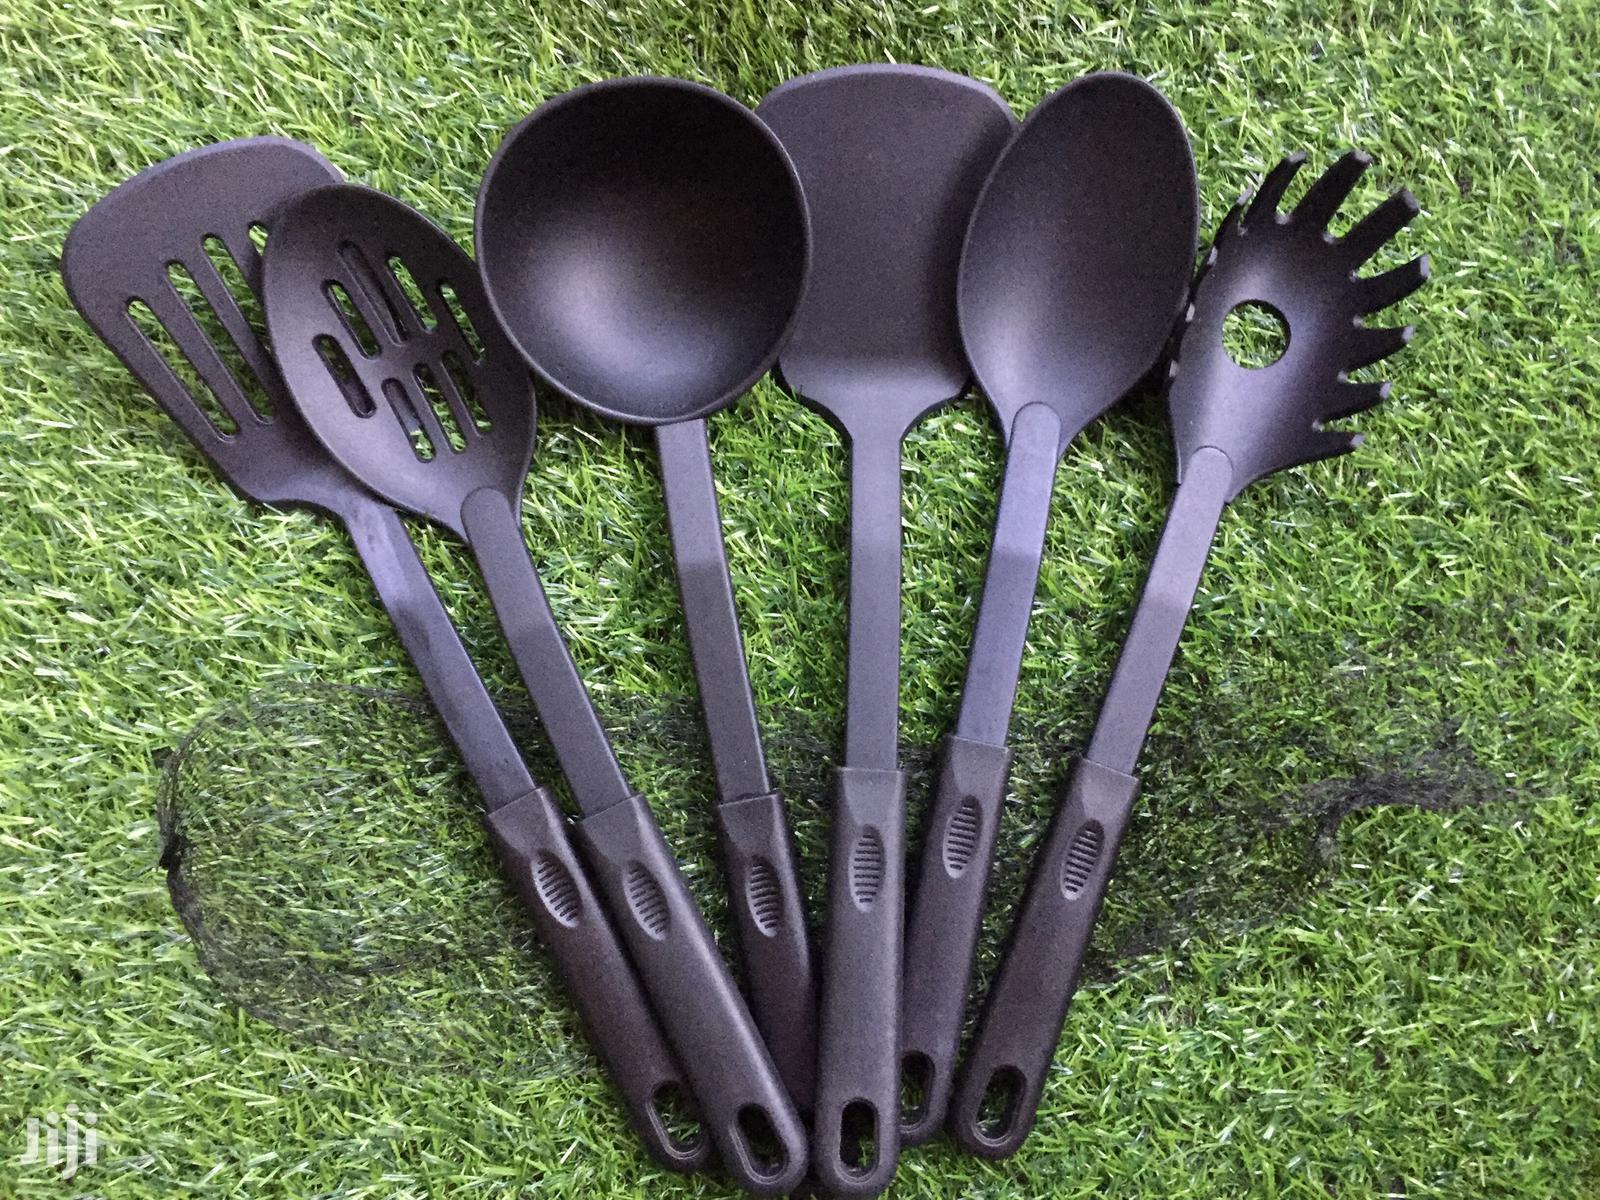 6 Set Silicone Cooking Tools Set | Kitchen & Dining for sale in Agona East, Central Region, Ghana